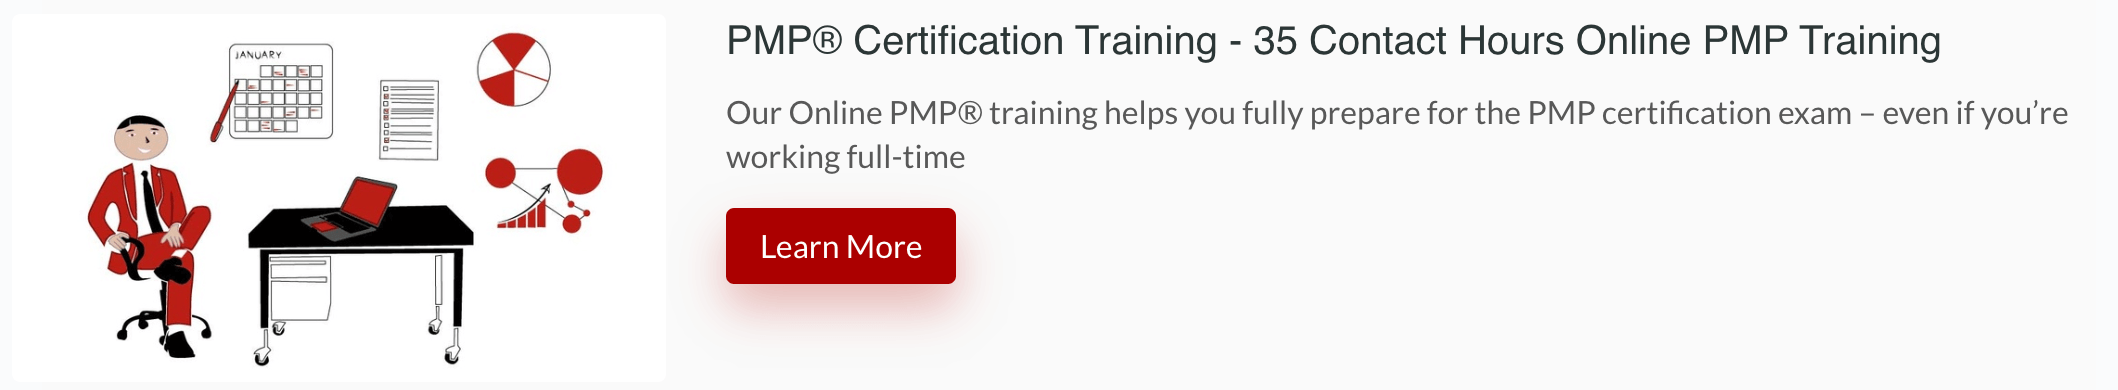 Screen-Shot-2019-10-16-at-12.18.44 #1 PMP Certification Bible - Top 25+ QAs About PMP®